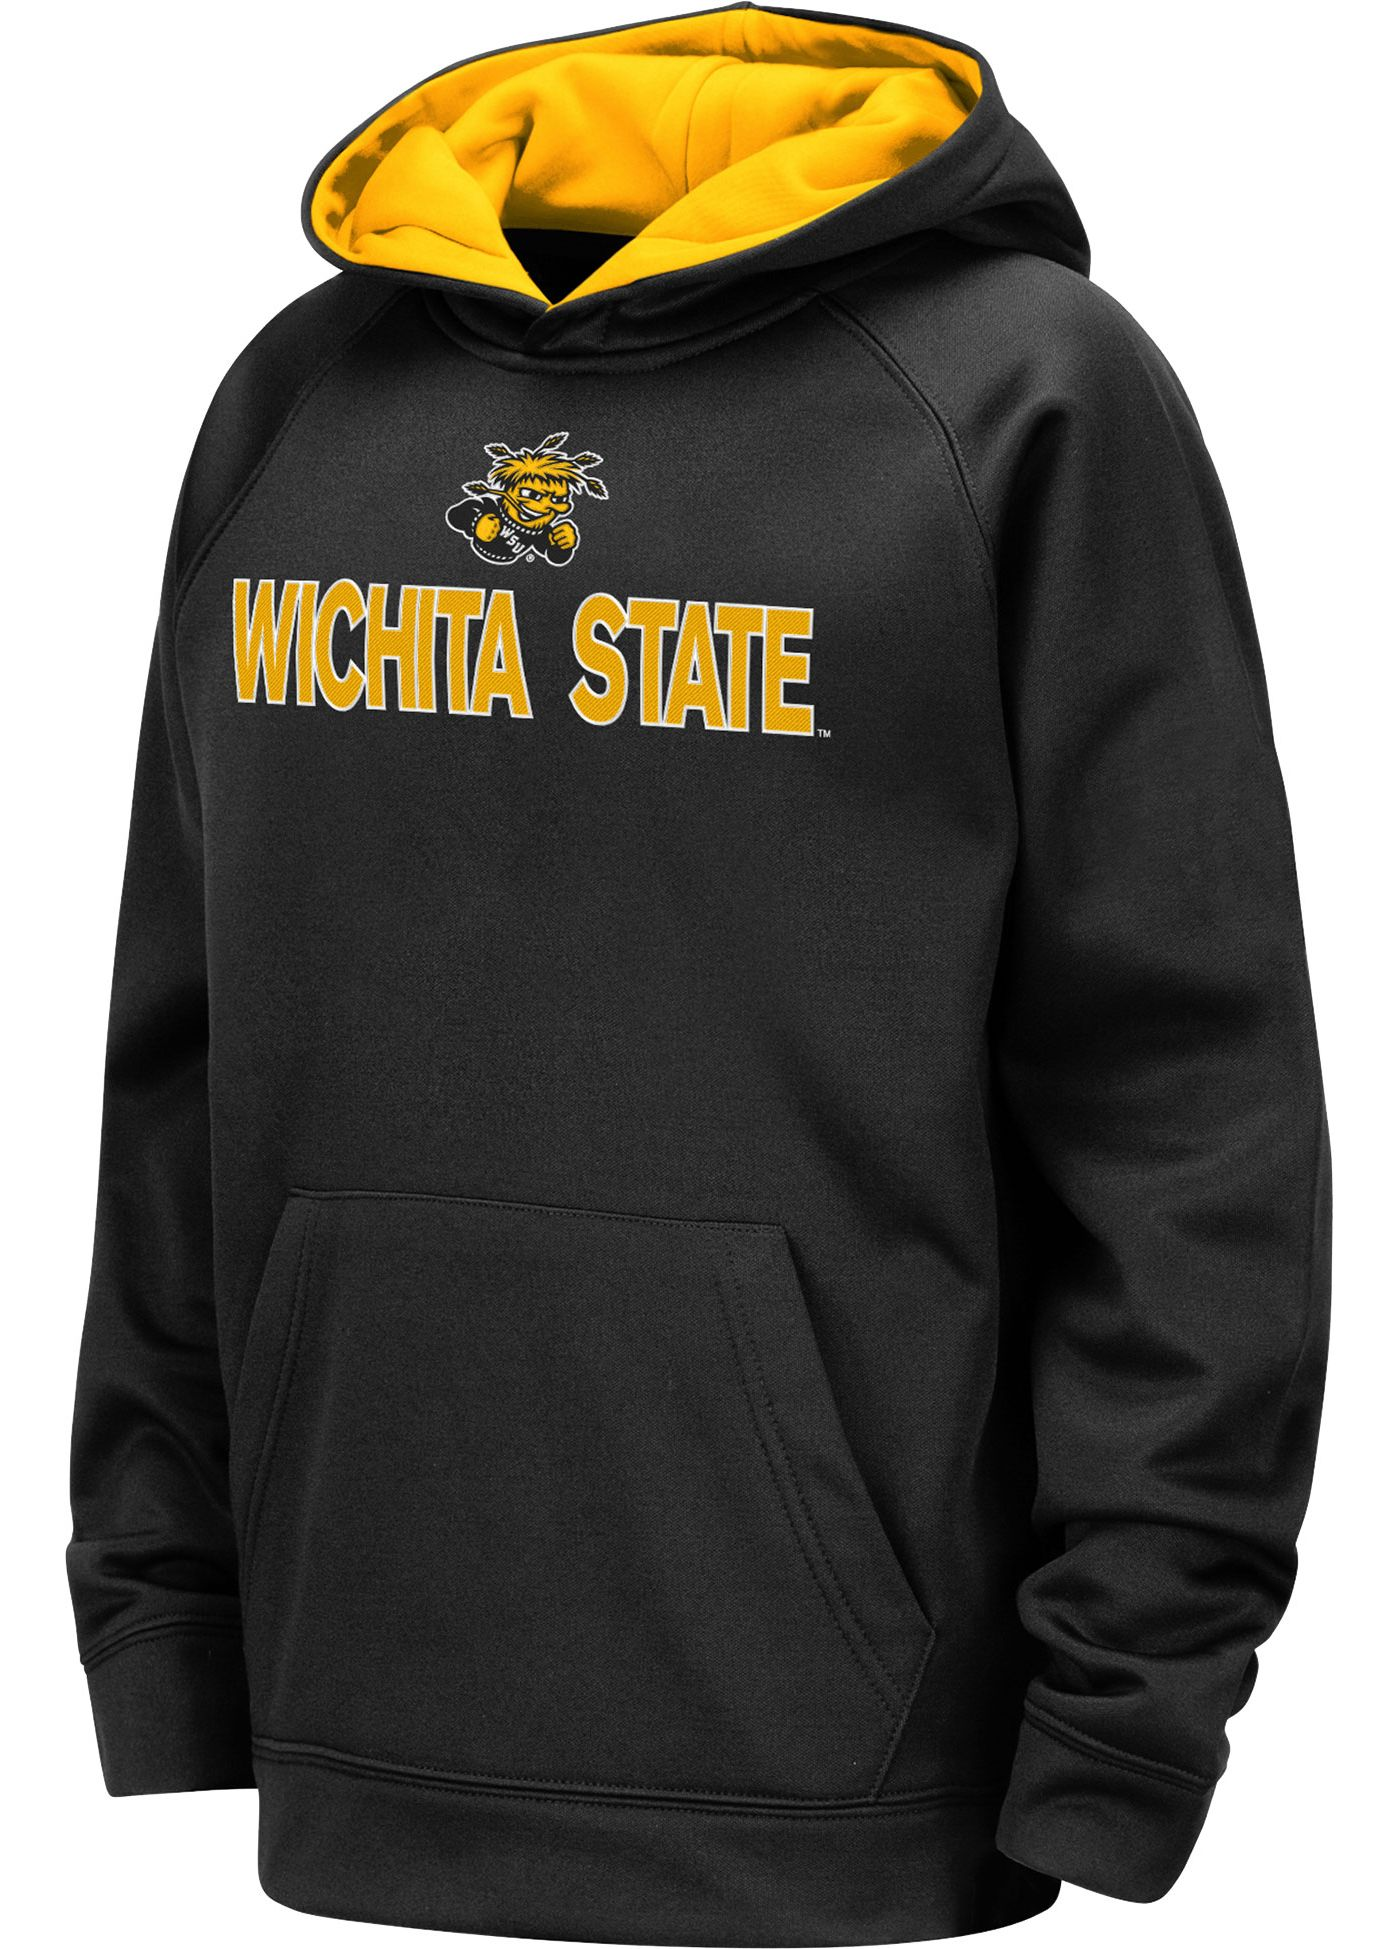 Colosseum Youth Wichita State Shockers Pullover Black Hoodie